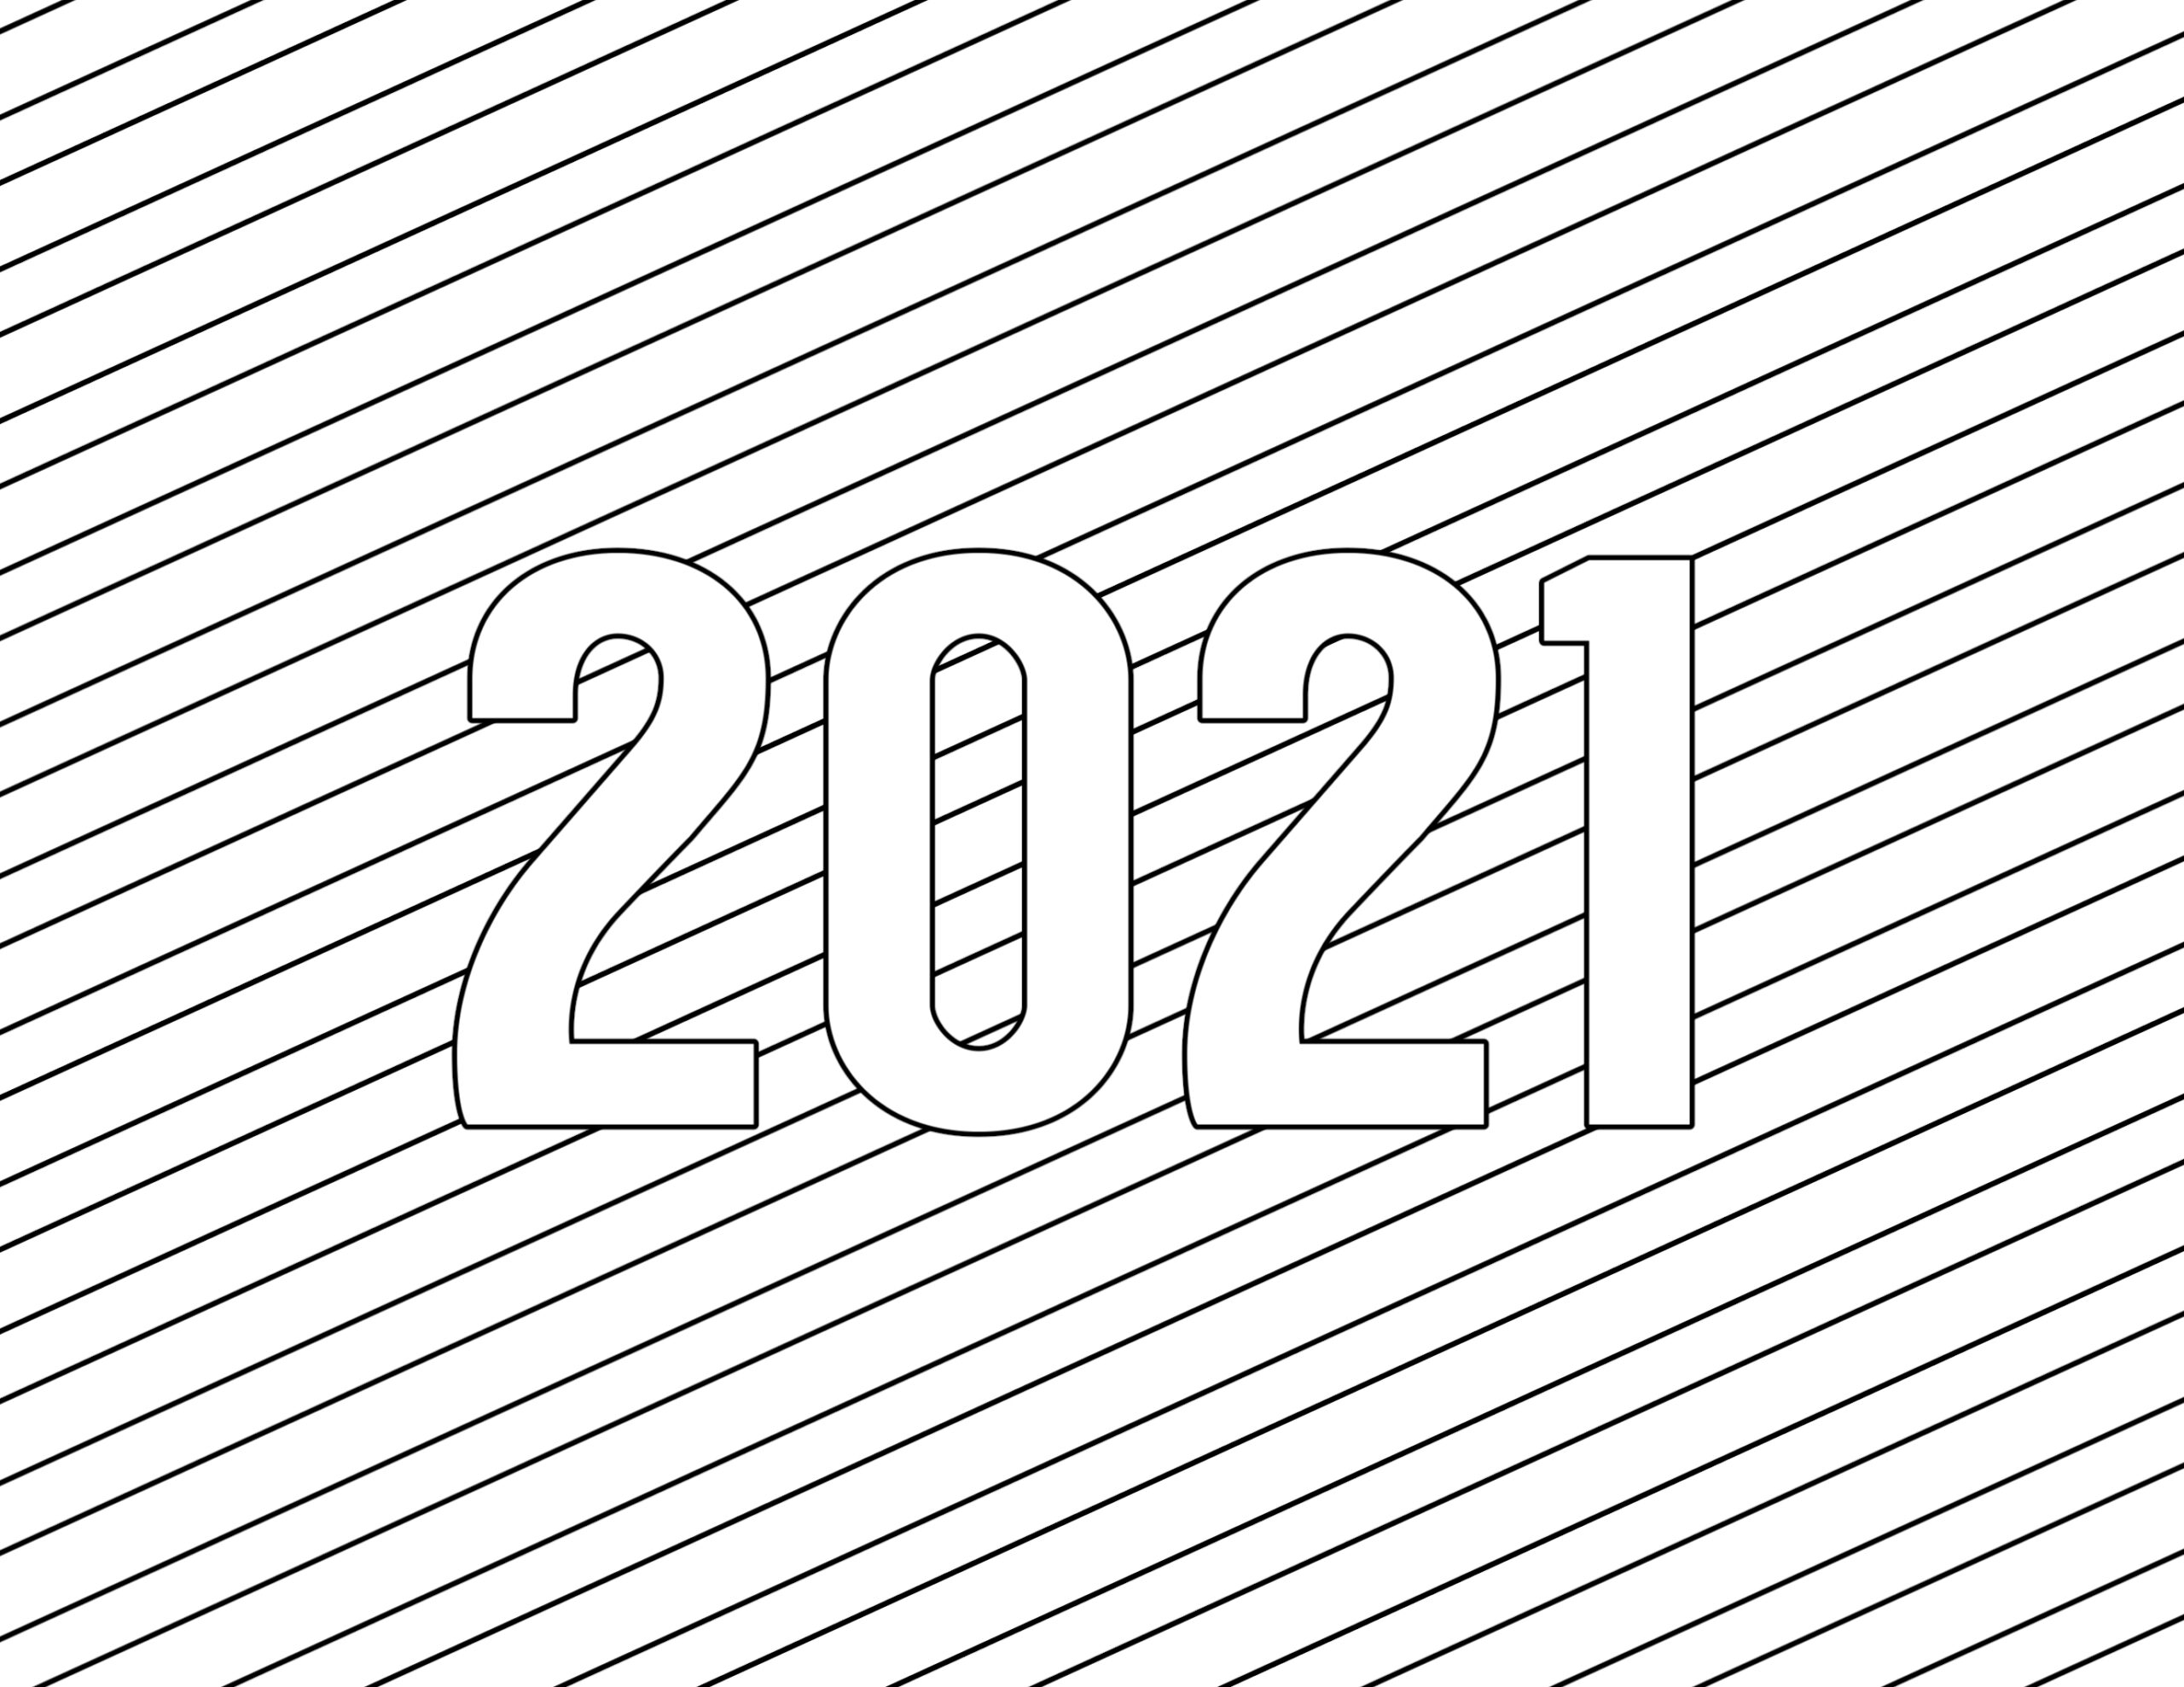 calendar new year for coloring happy kids and adults paper pencil crayon pics chalk coloring pages 2021 Coloring Page